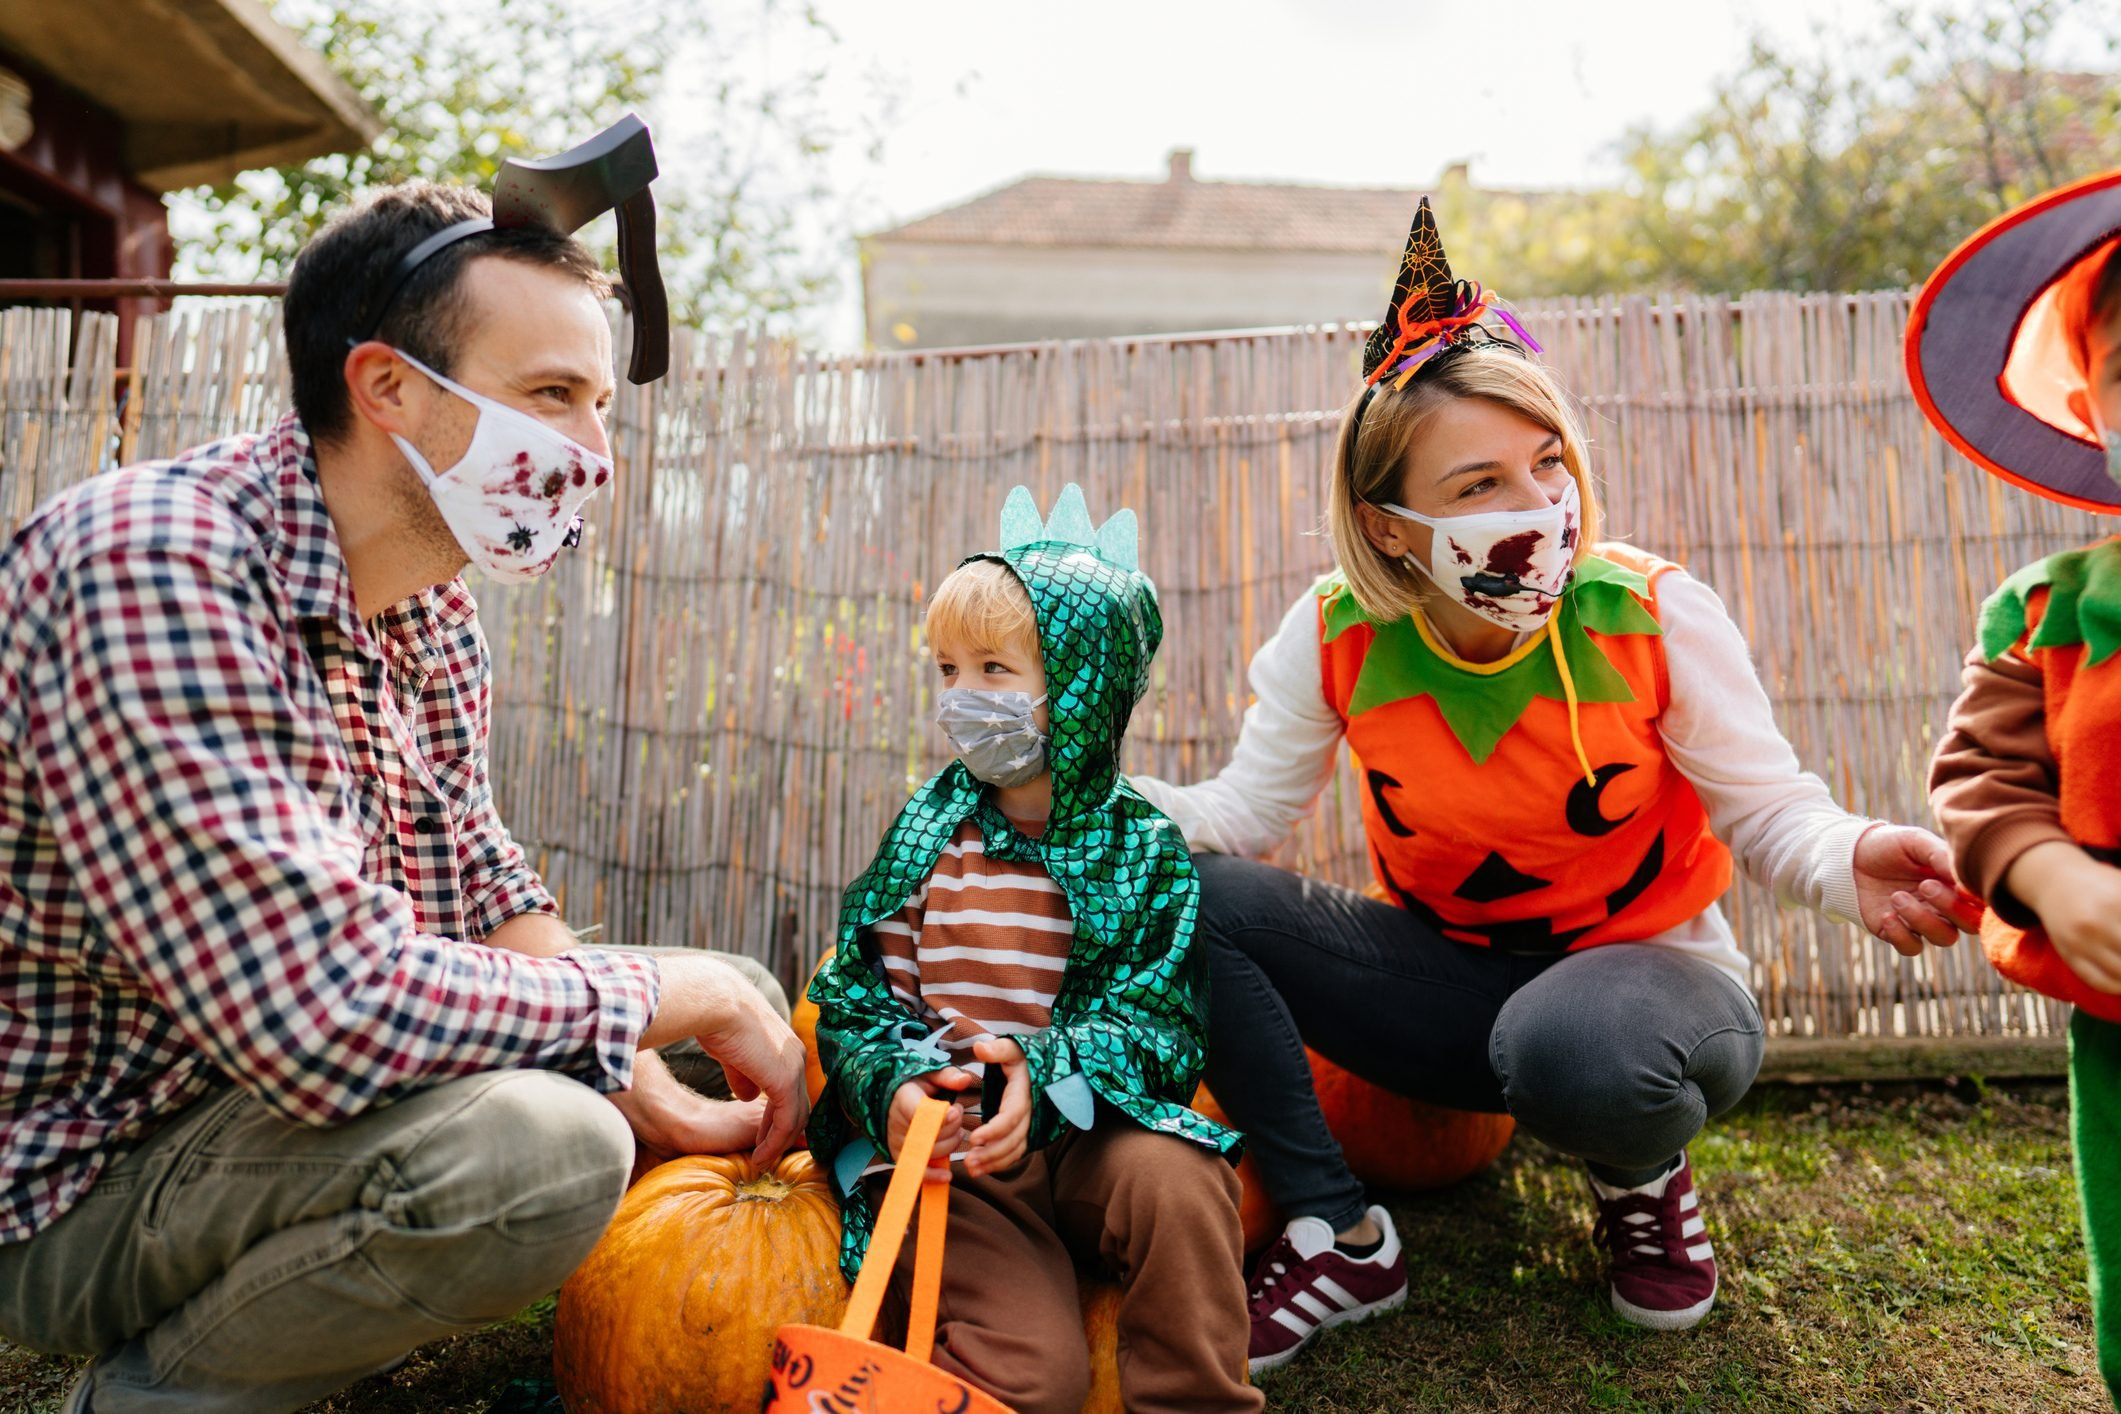 A Healthier (and Safer) Halloween